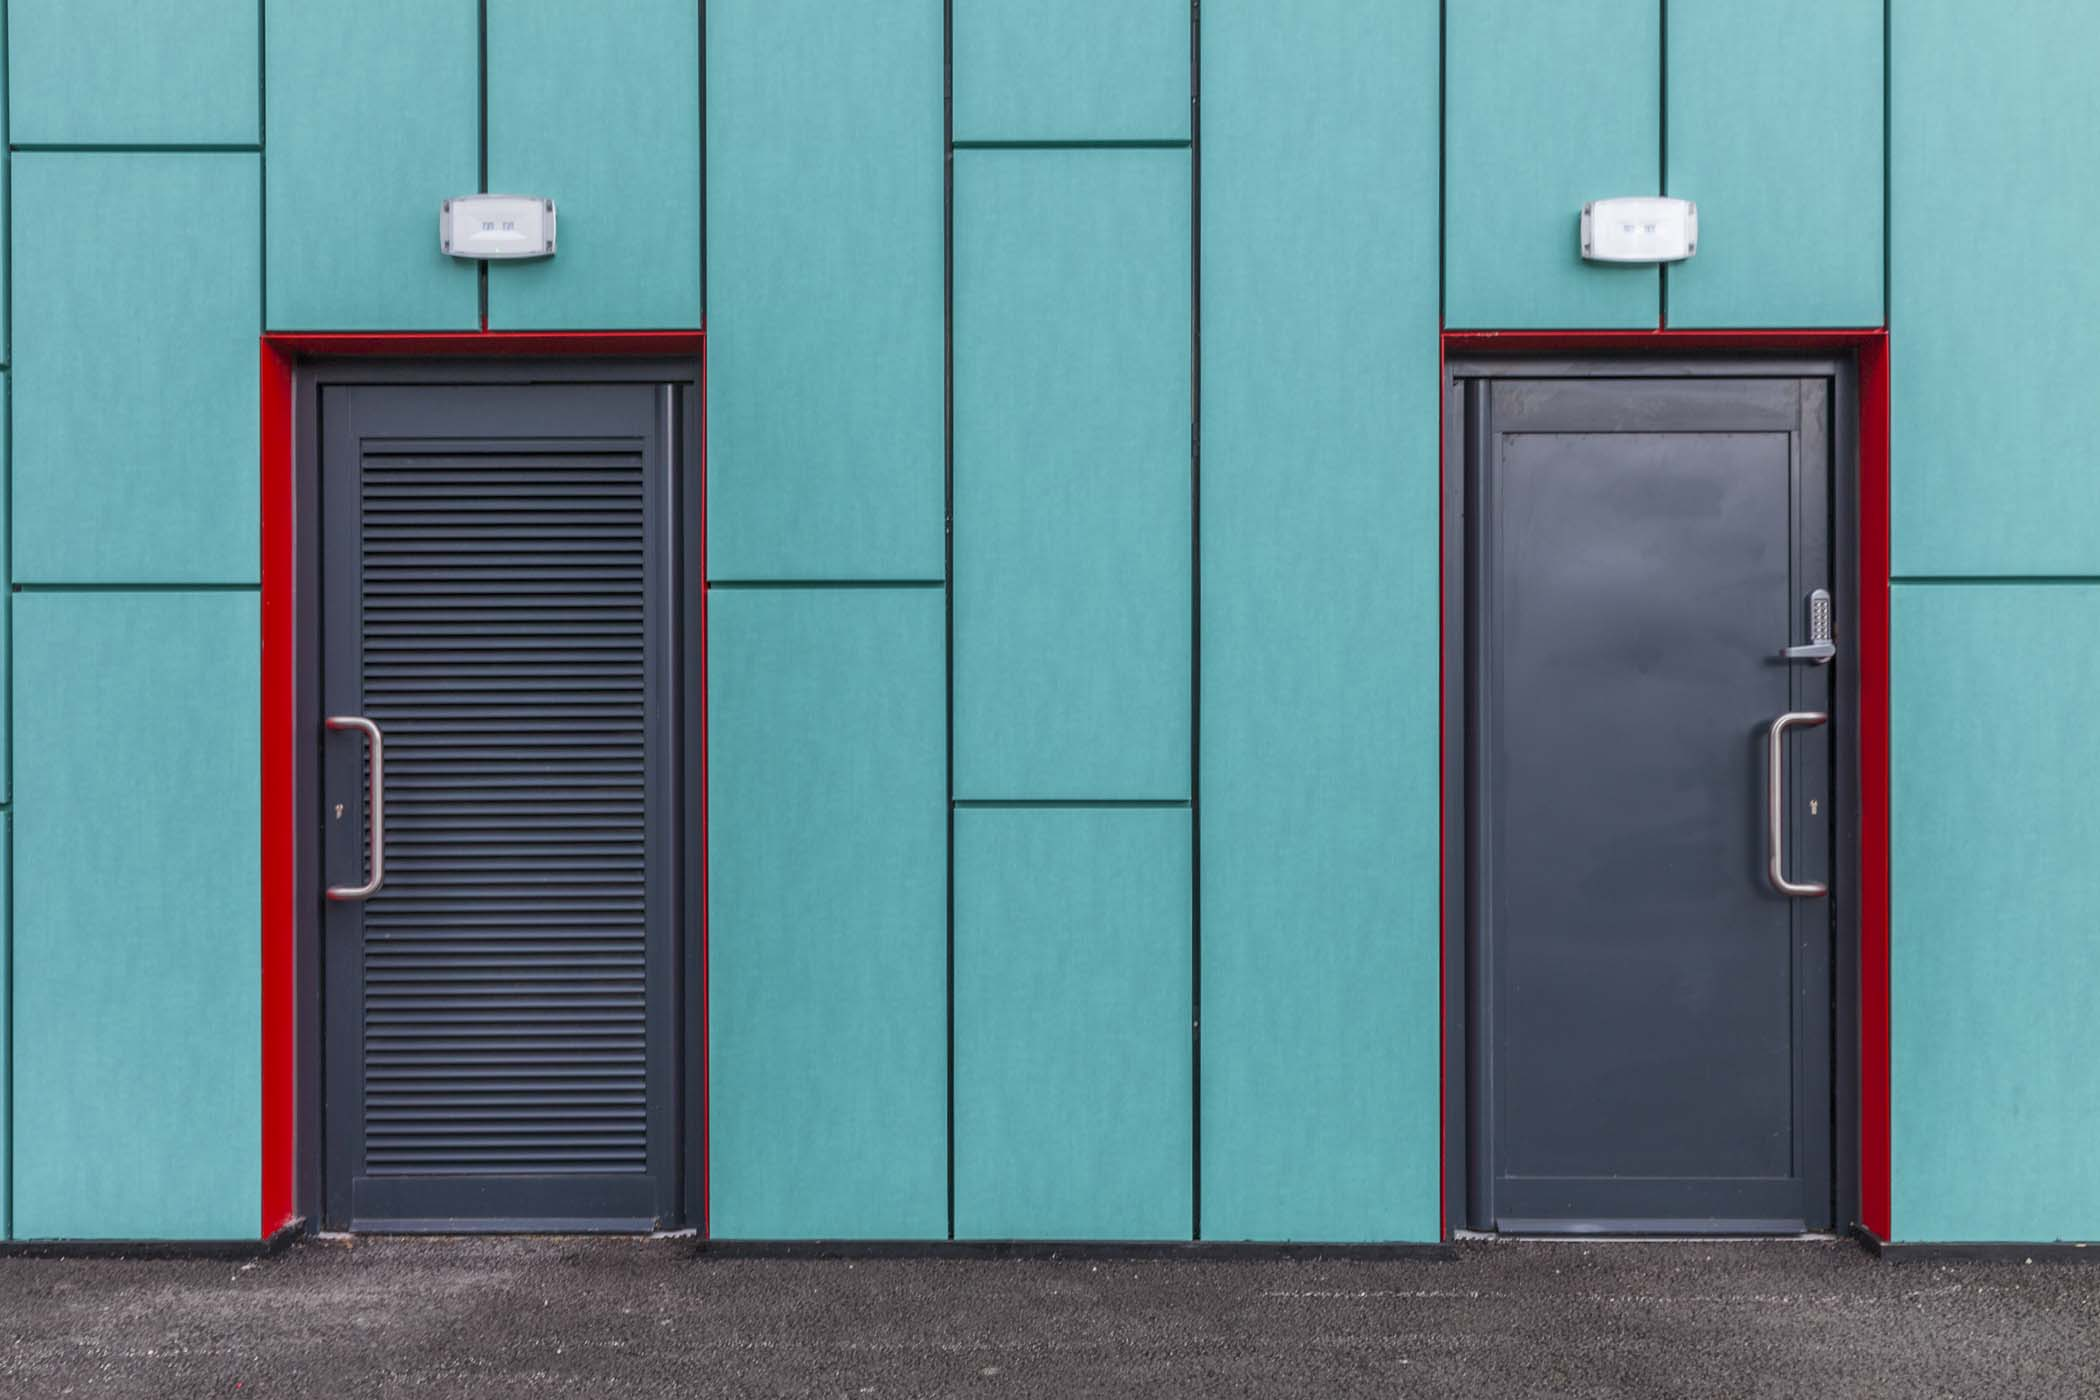 Different applications for the STII aluminium door from Sapa & STII